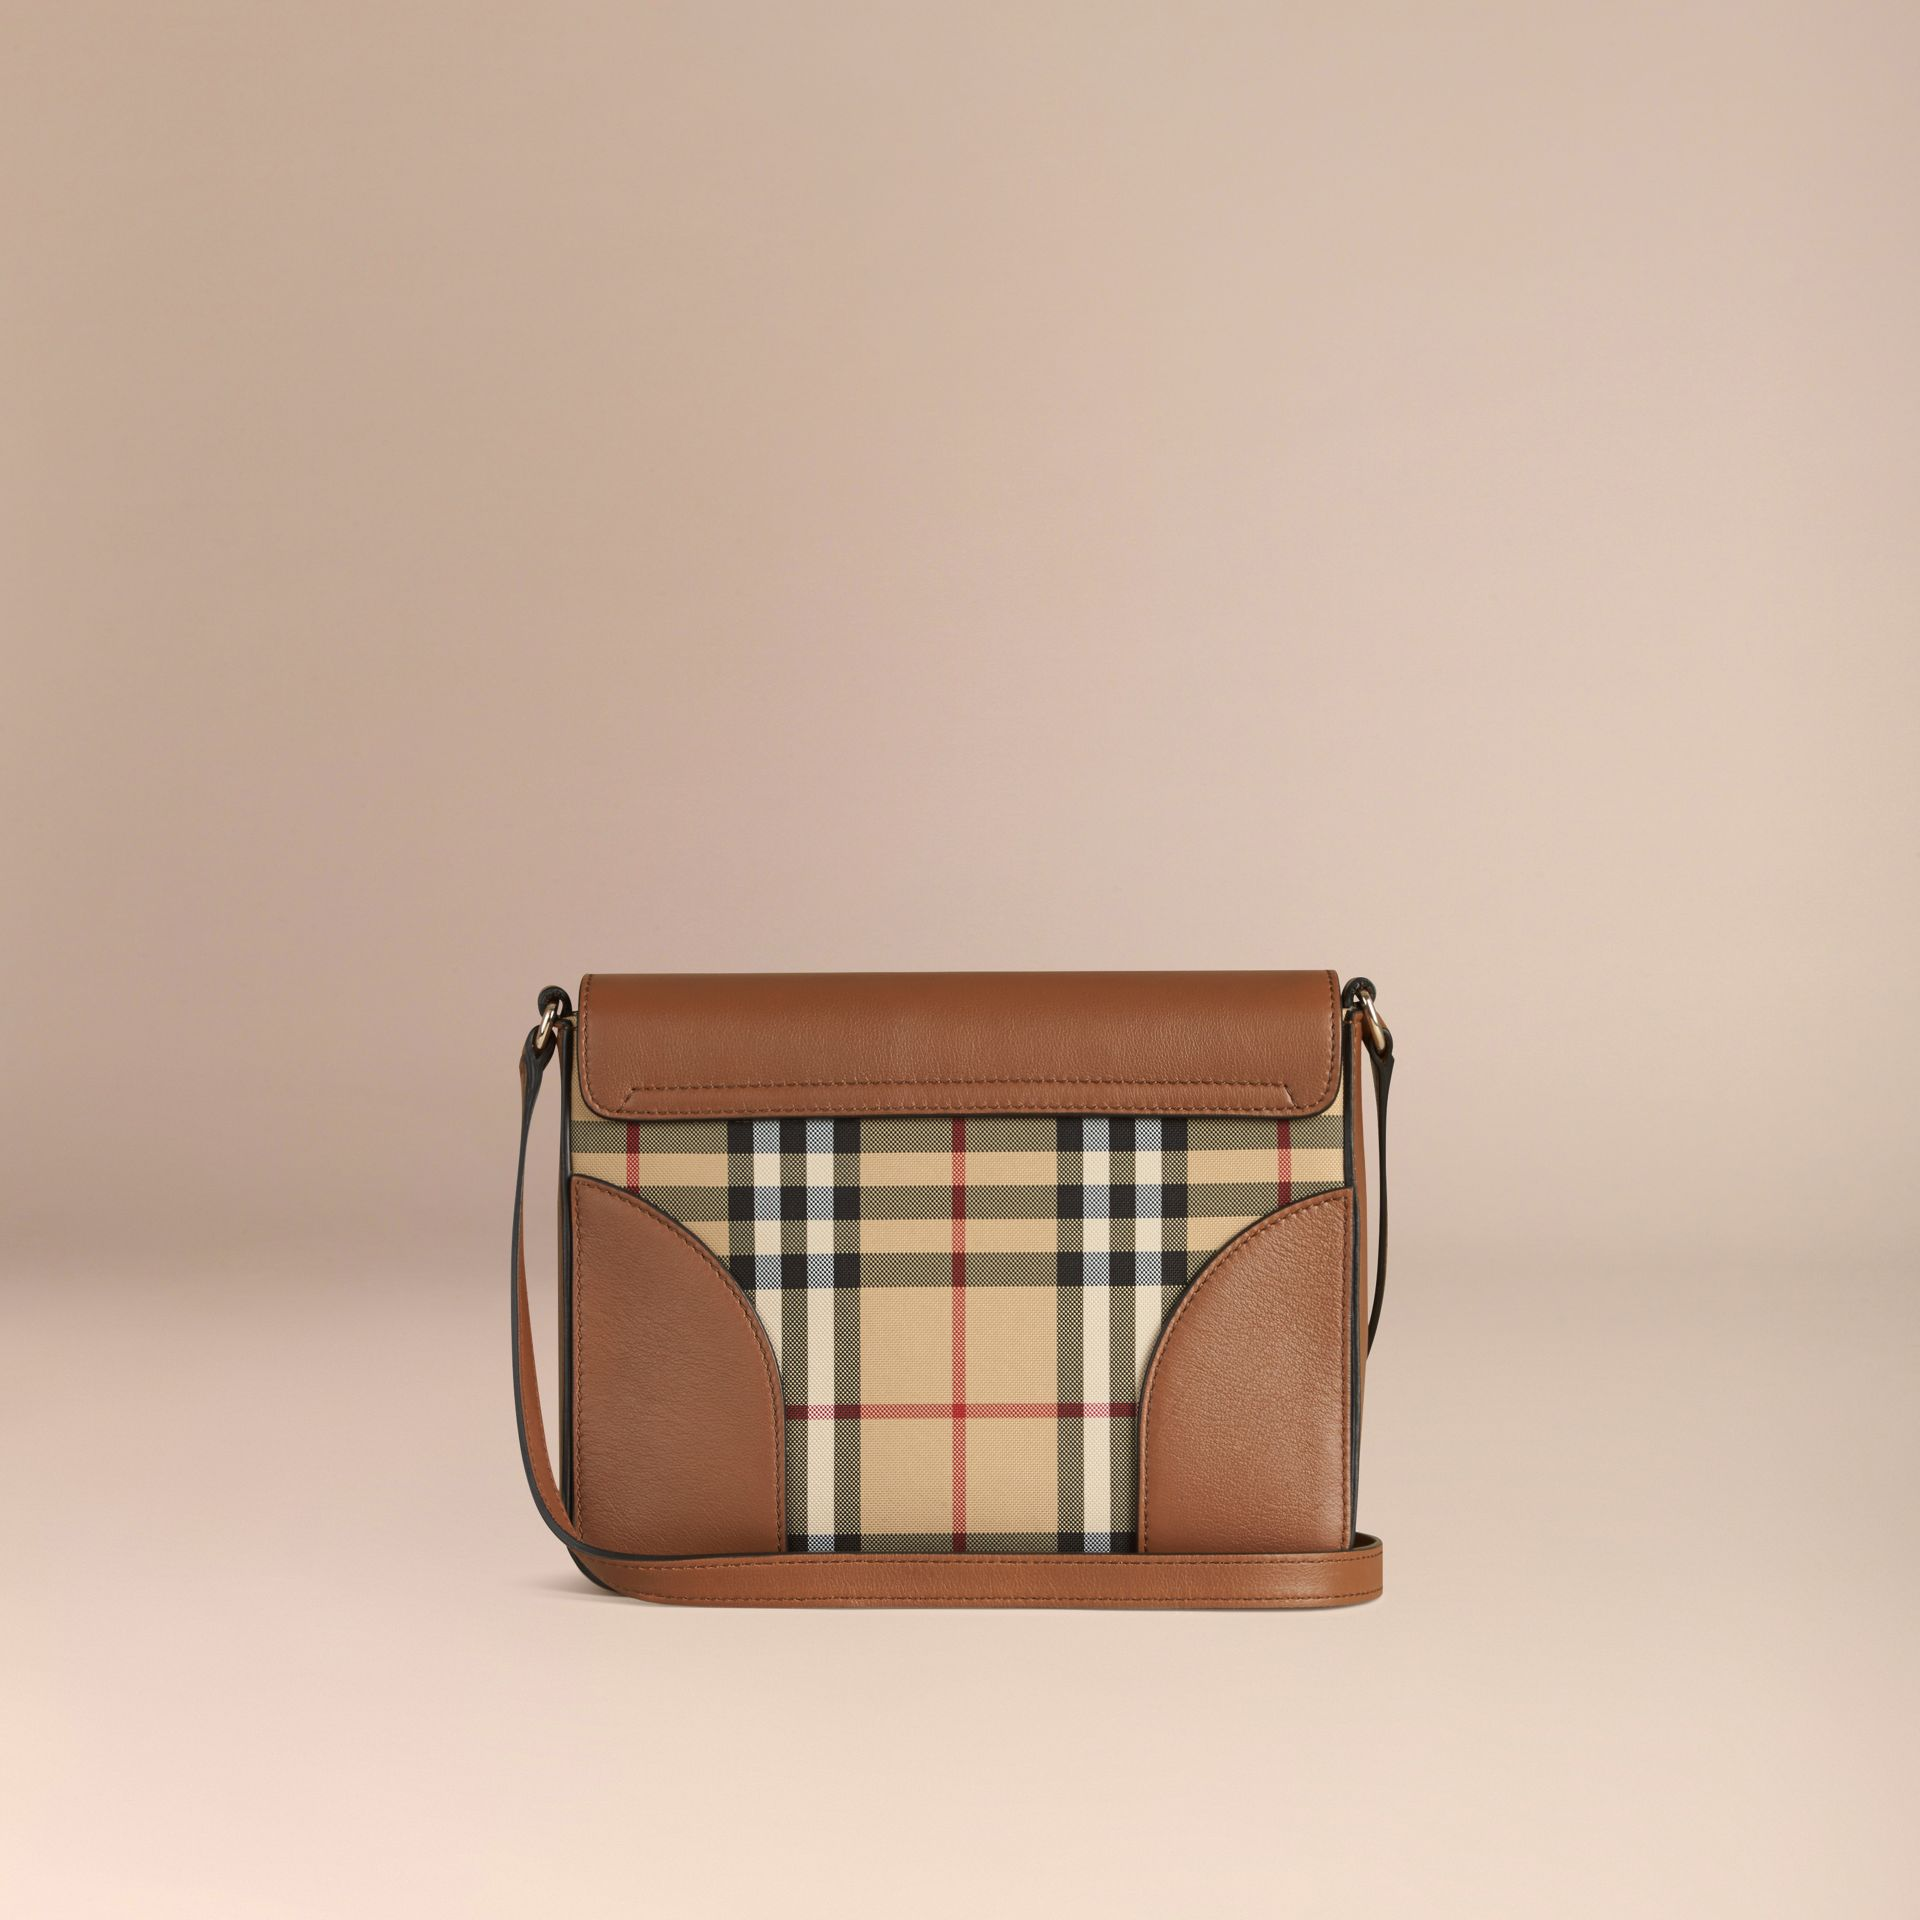 Honey/tan Small Horseferry Check and Leather Crossbody Bag Honey/tan - gallery image 3